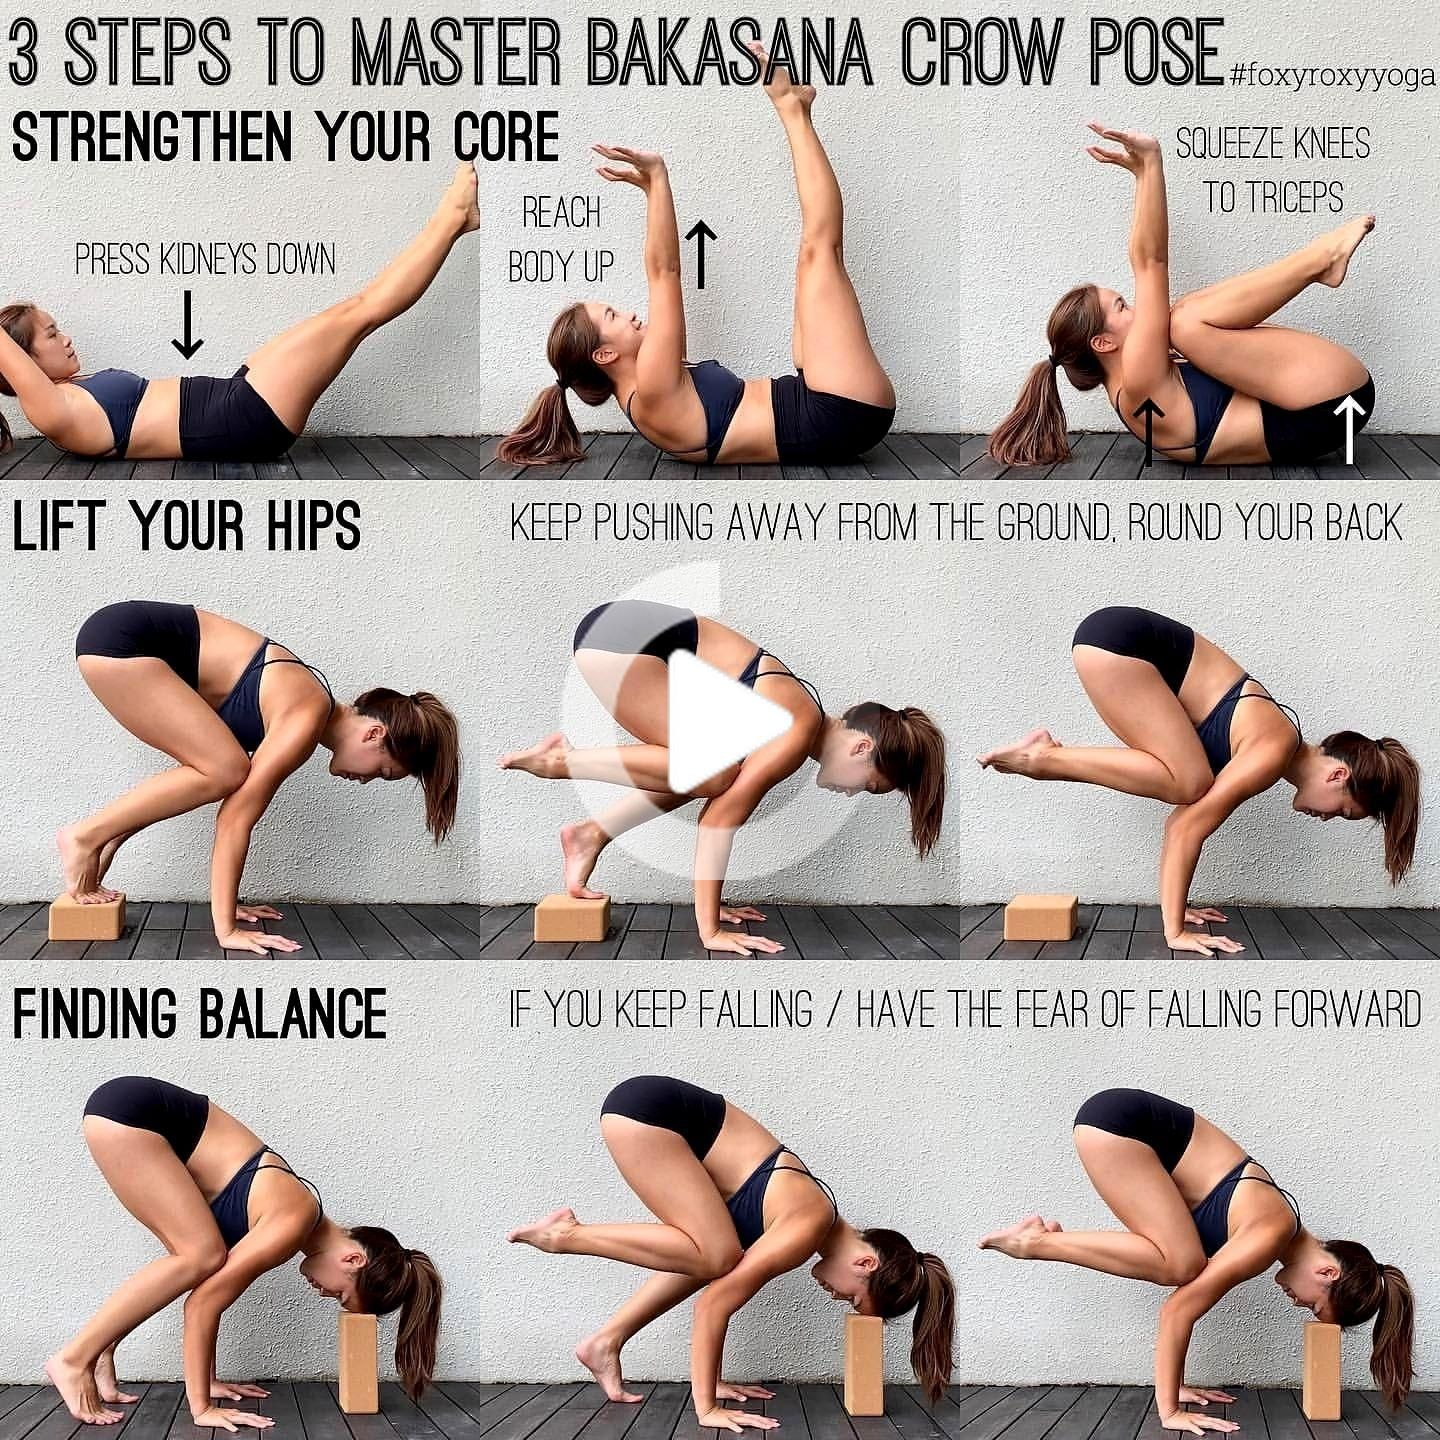 HOW TO MASTER BAKASANA 50. Fire up your core by doing Supine Crow ...